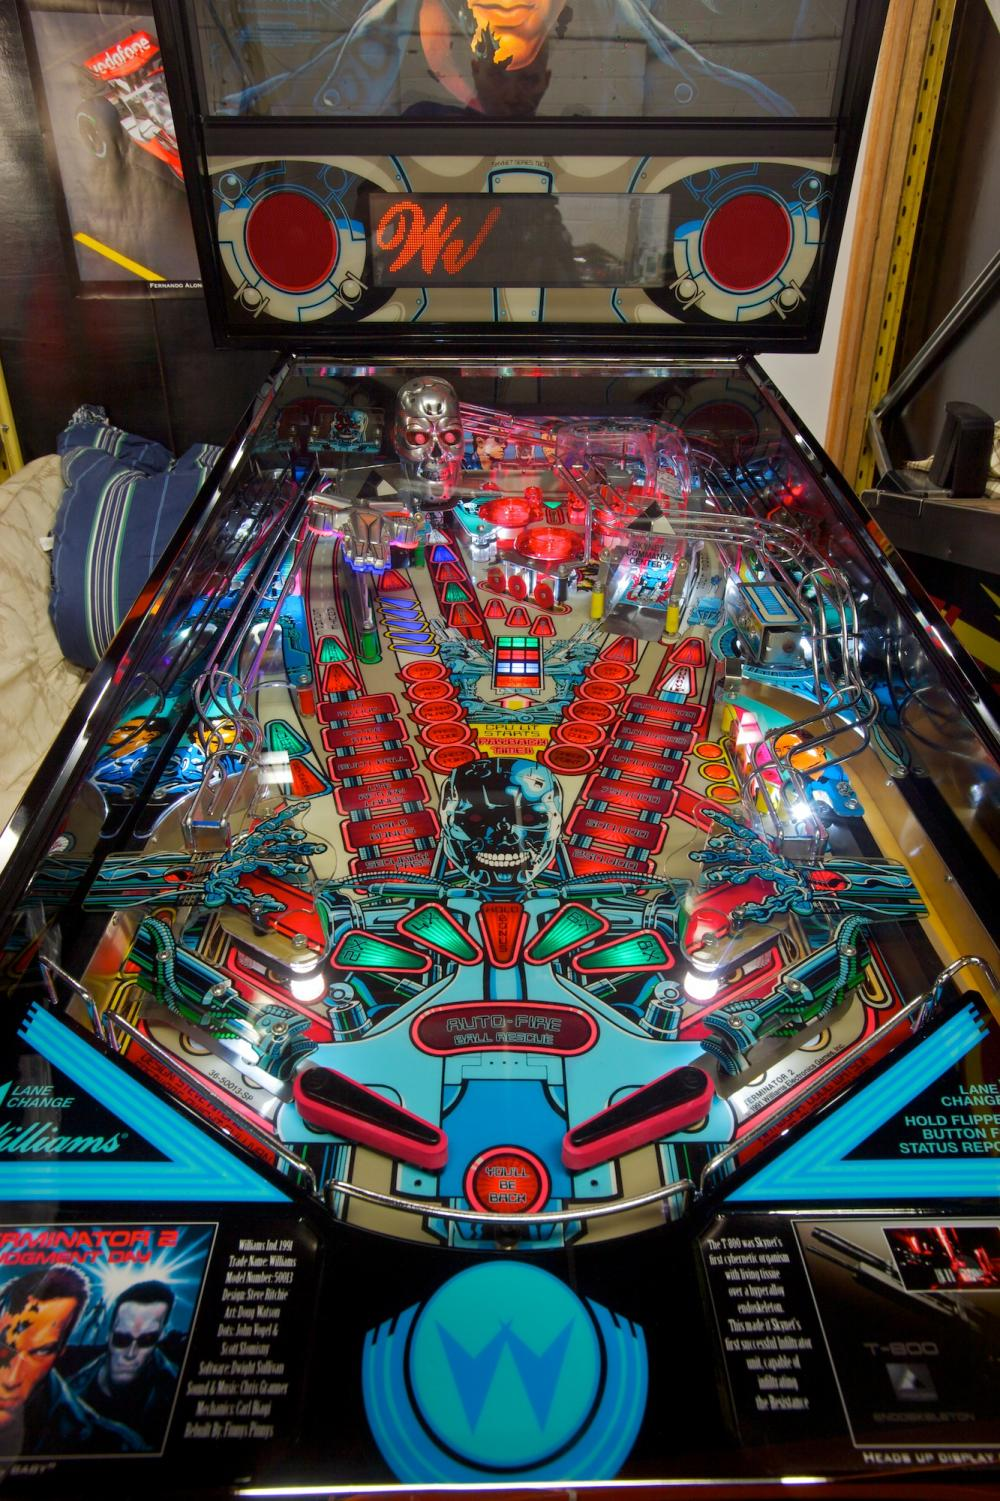 Pinball machines are seen in many different casinos